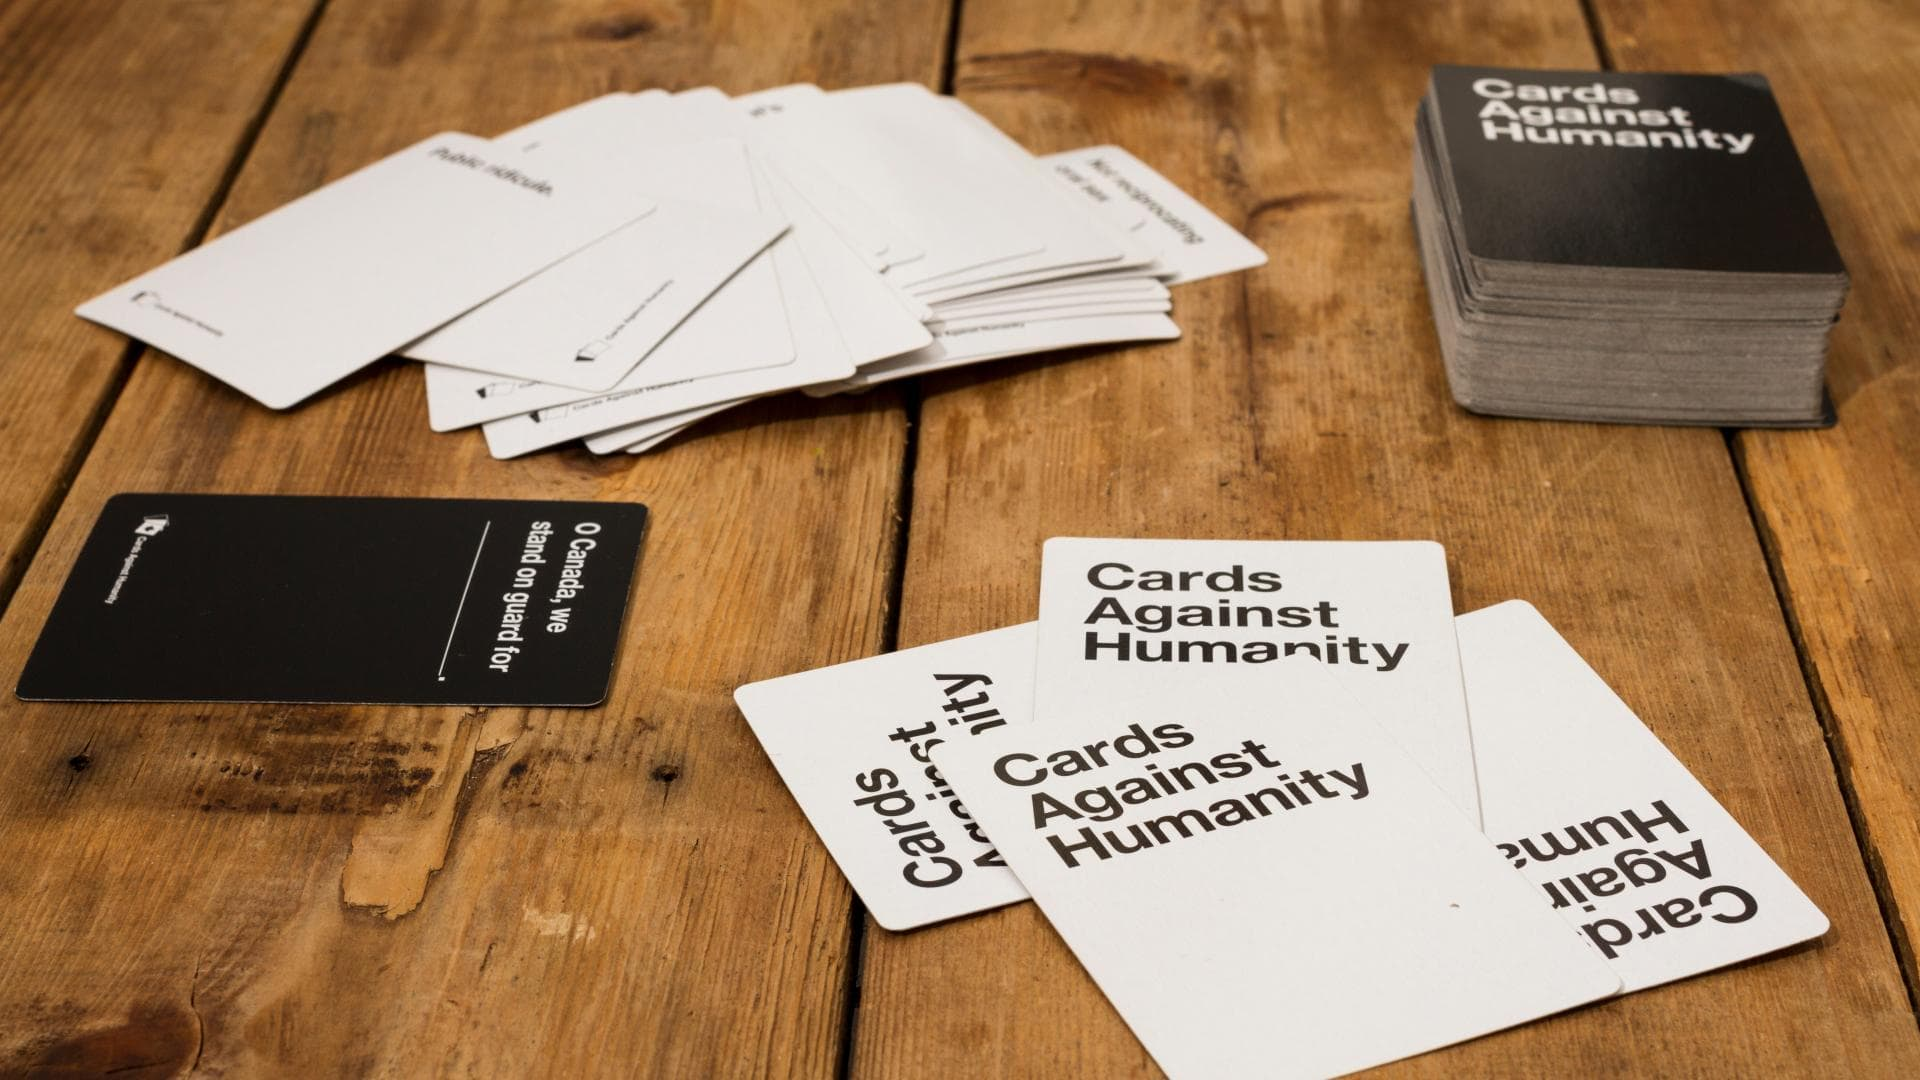 cards agains humanity tisch